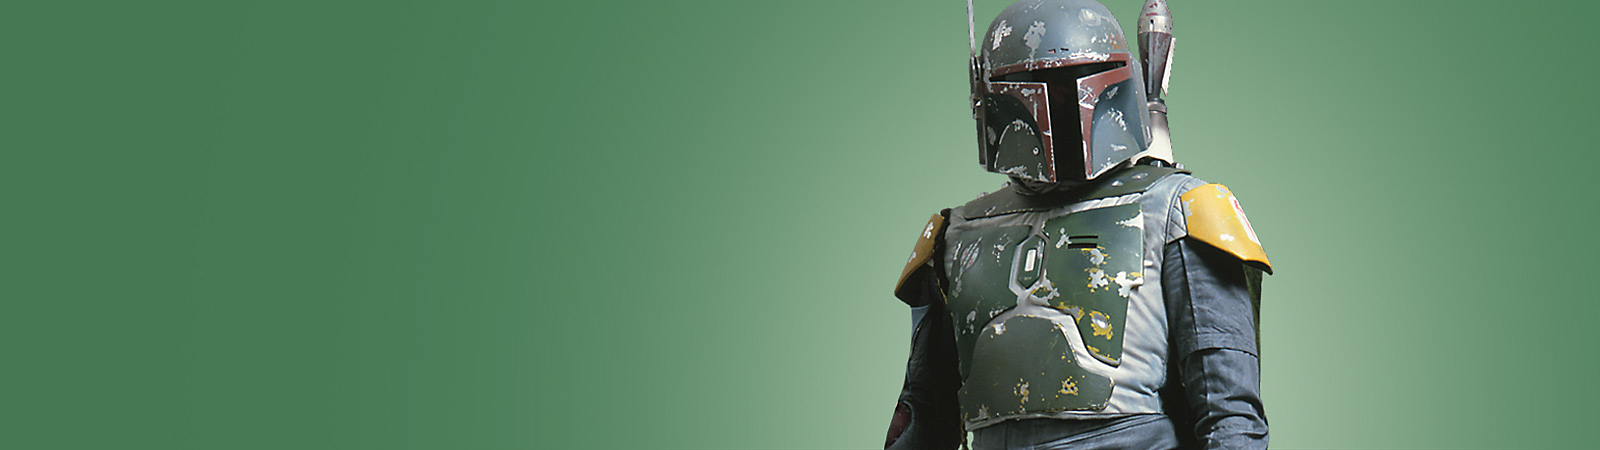 Background image of Boba Fett